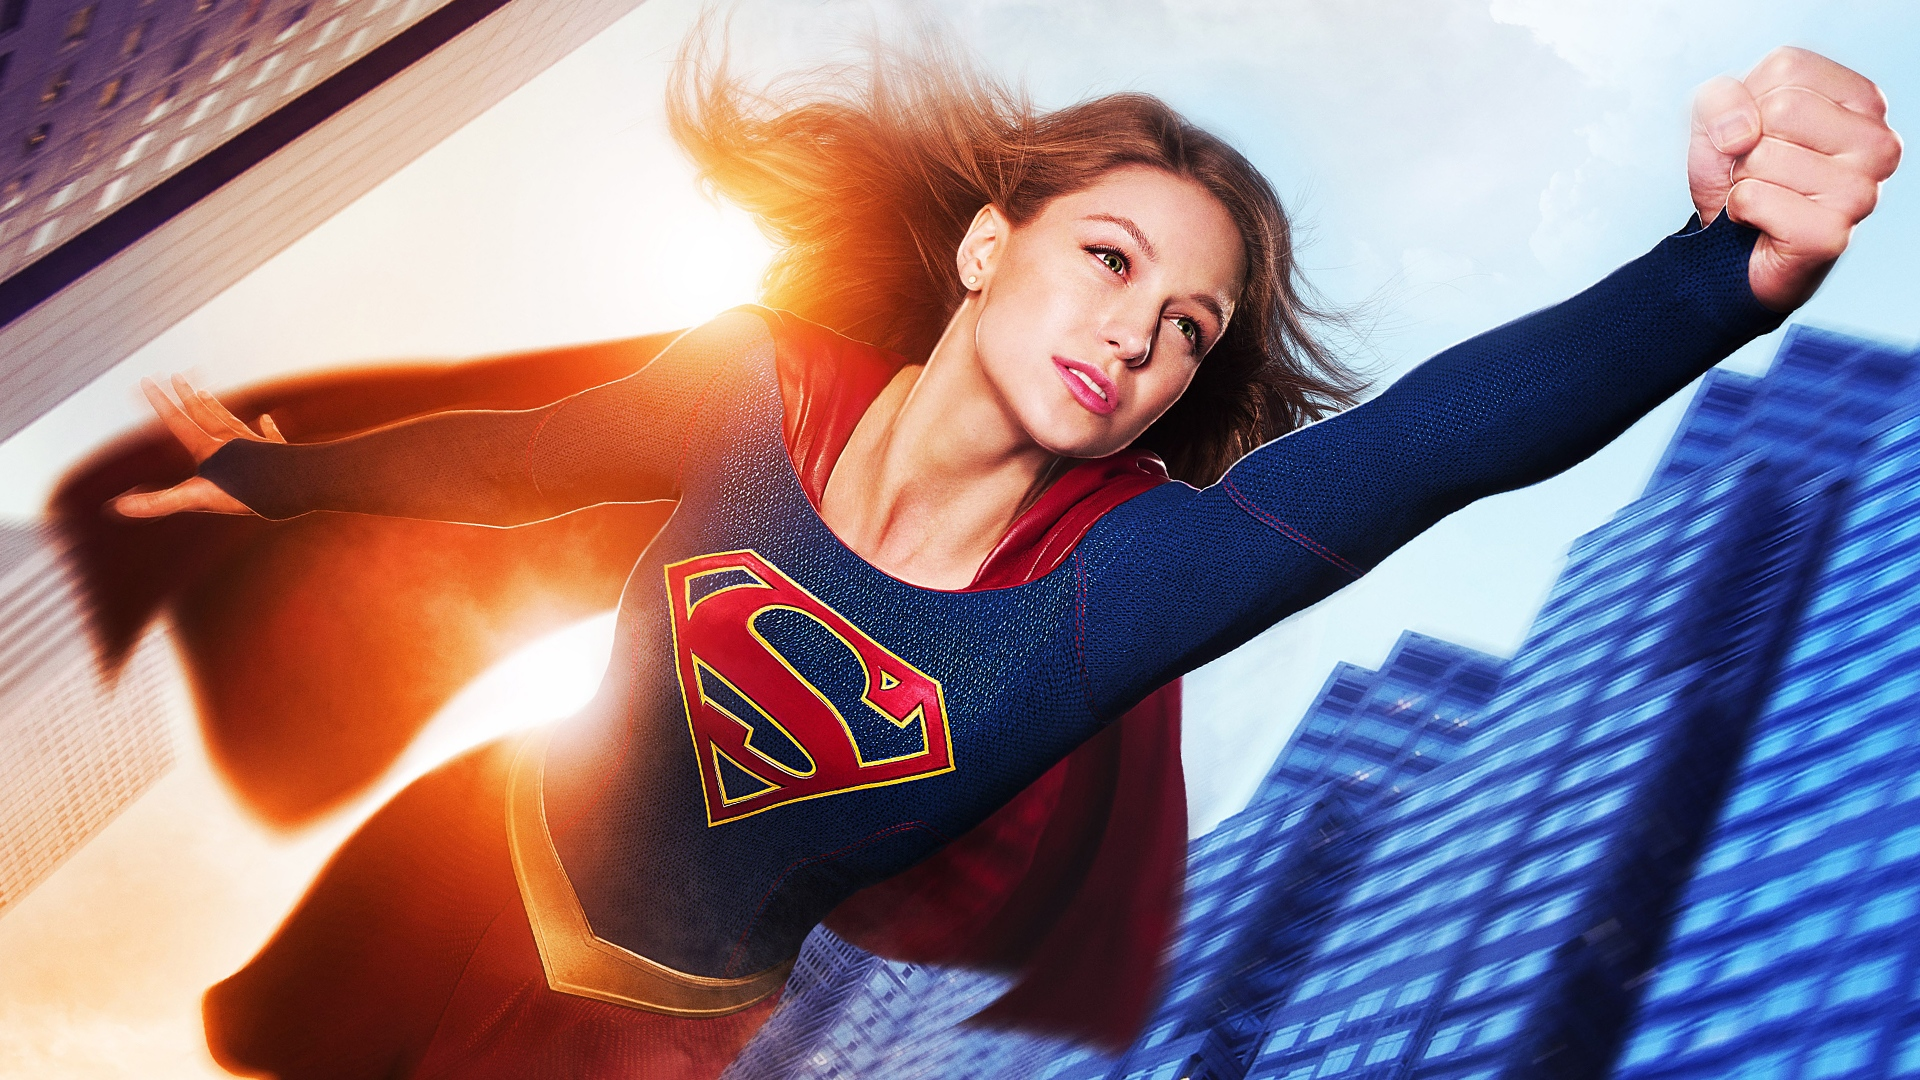 Amazing Super Girl Pictures & Backgrounds